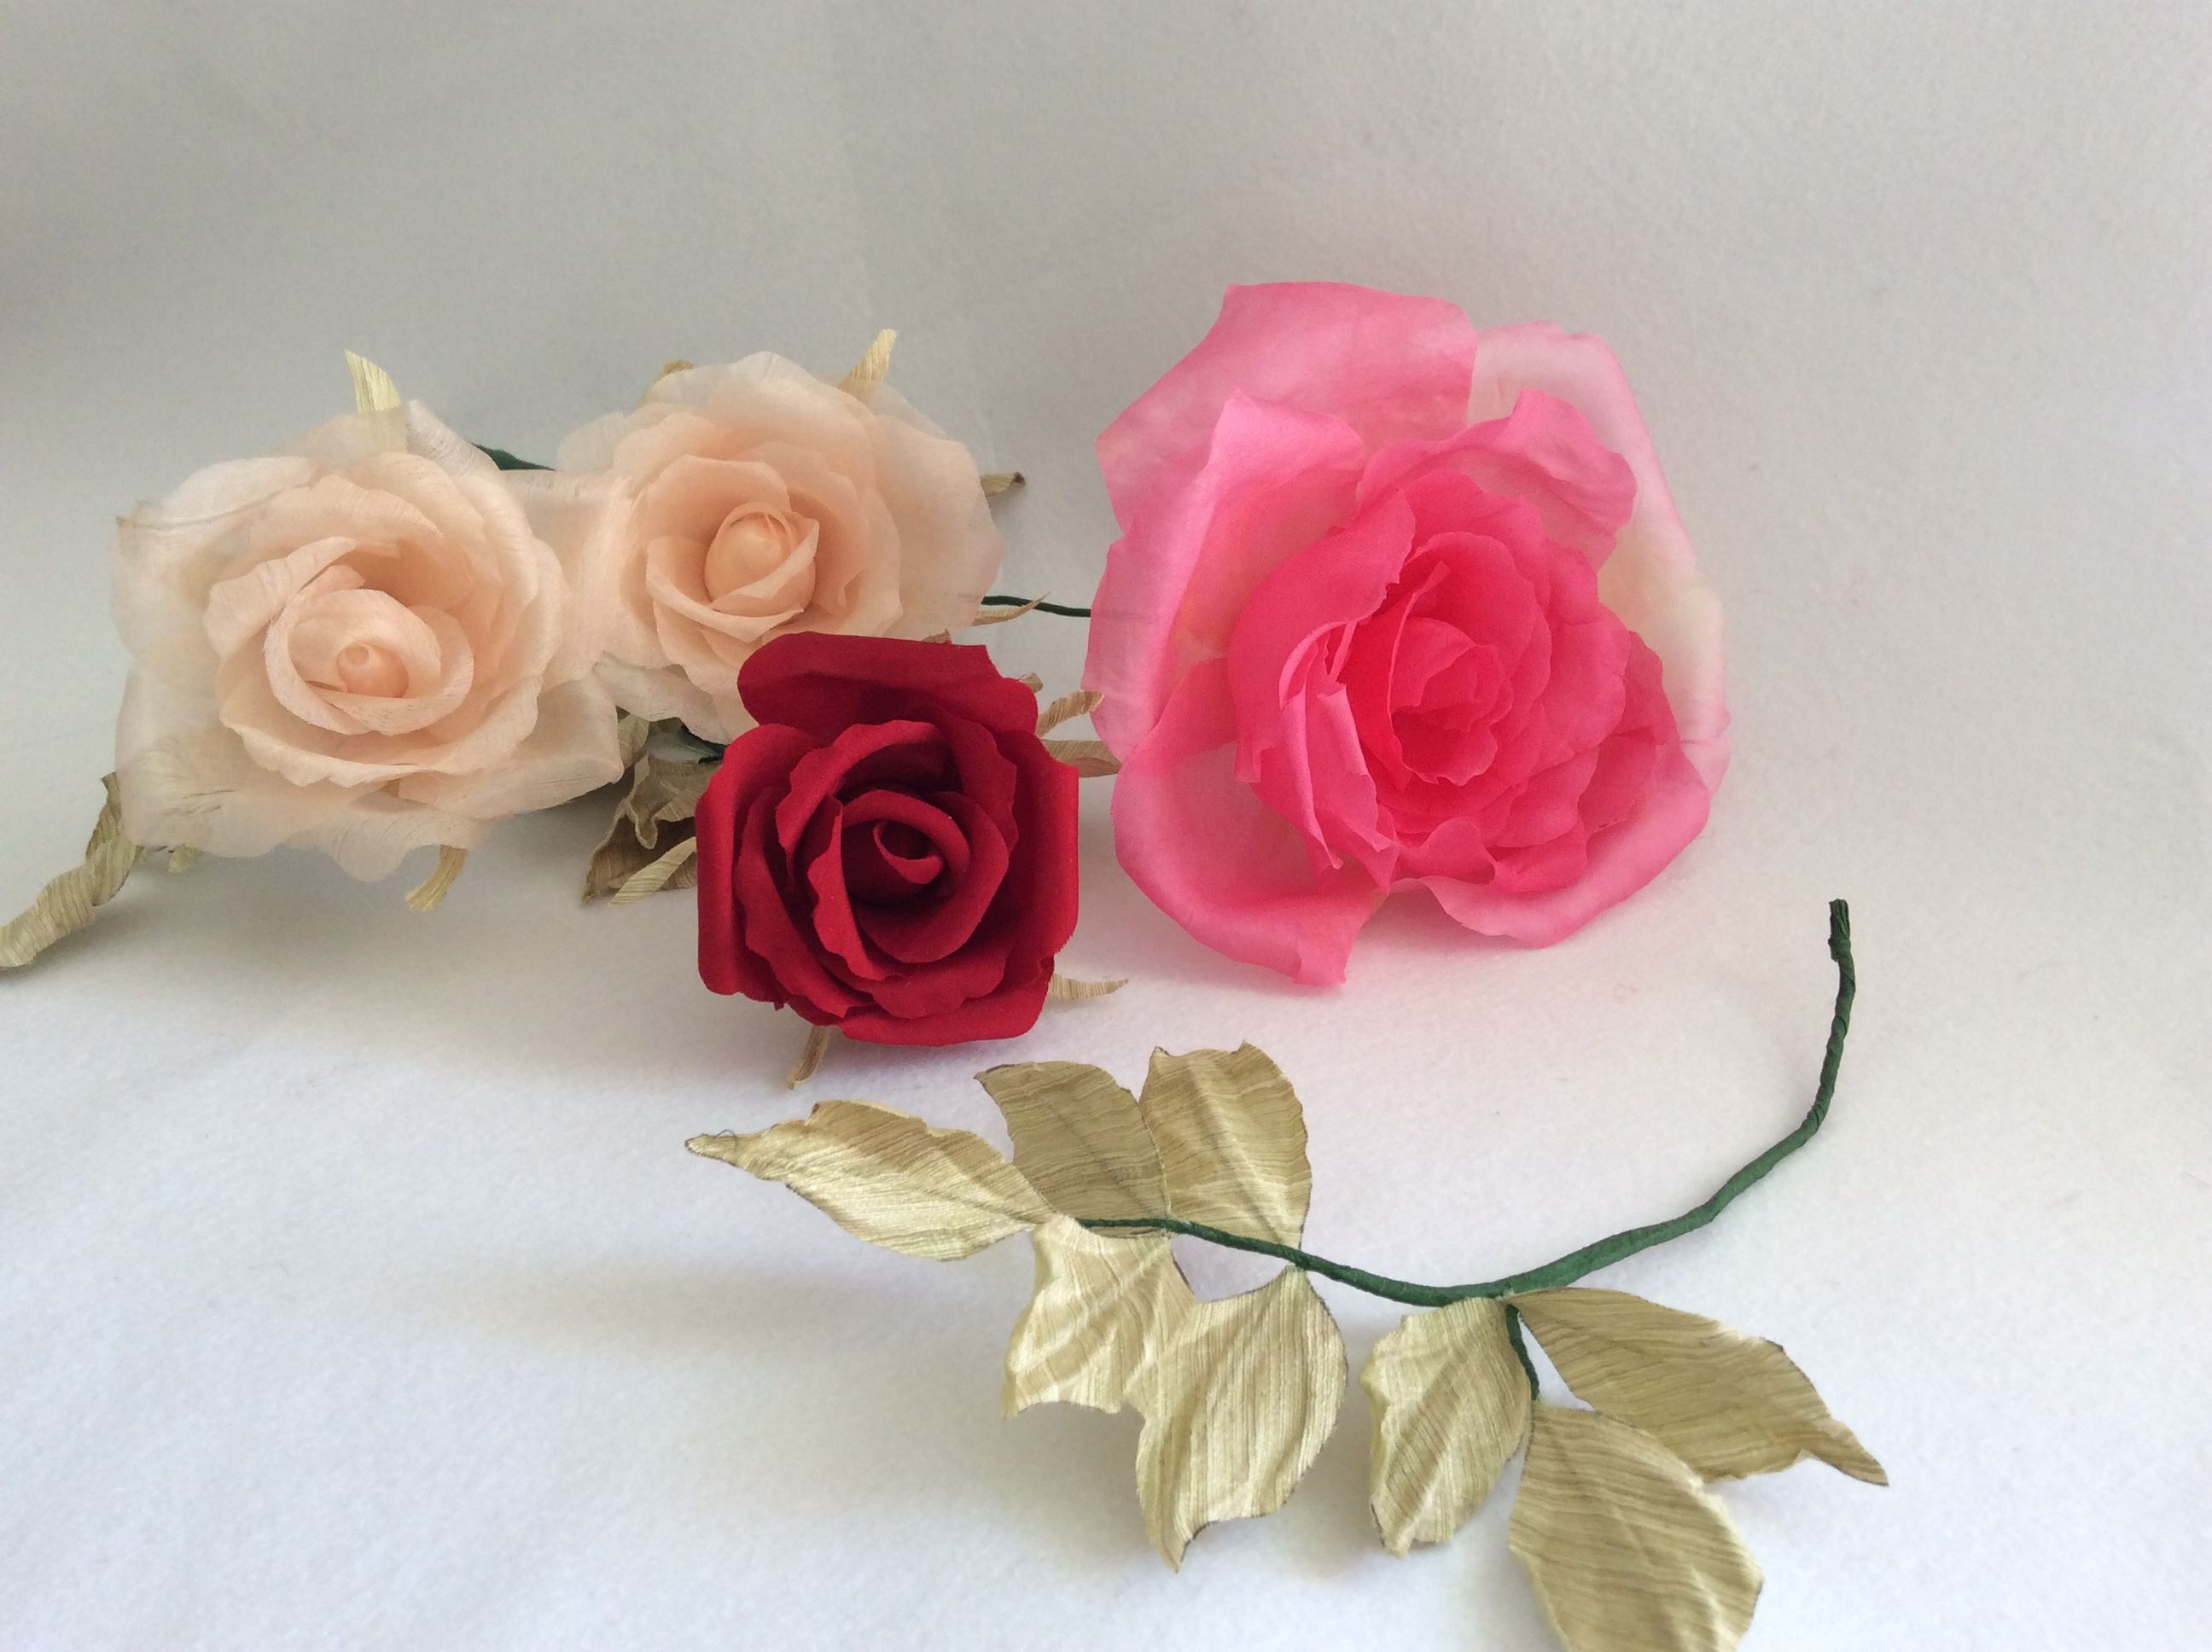 Learn To Make Your Own Silk Flowers Flower Making Workshops Held